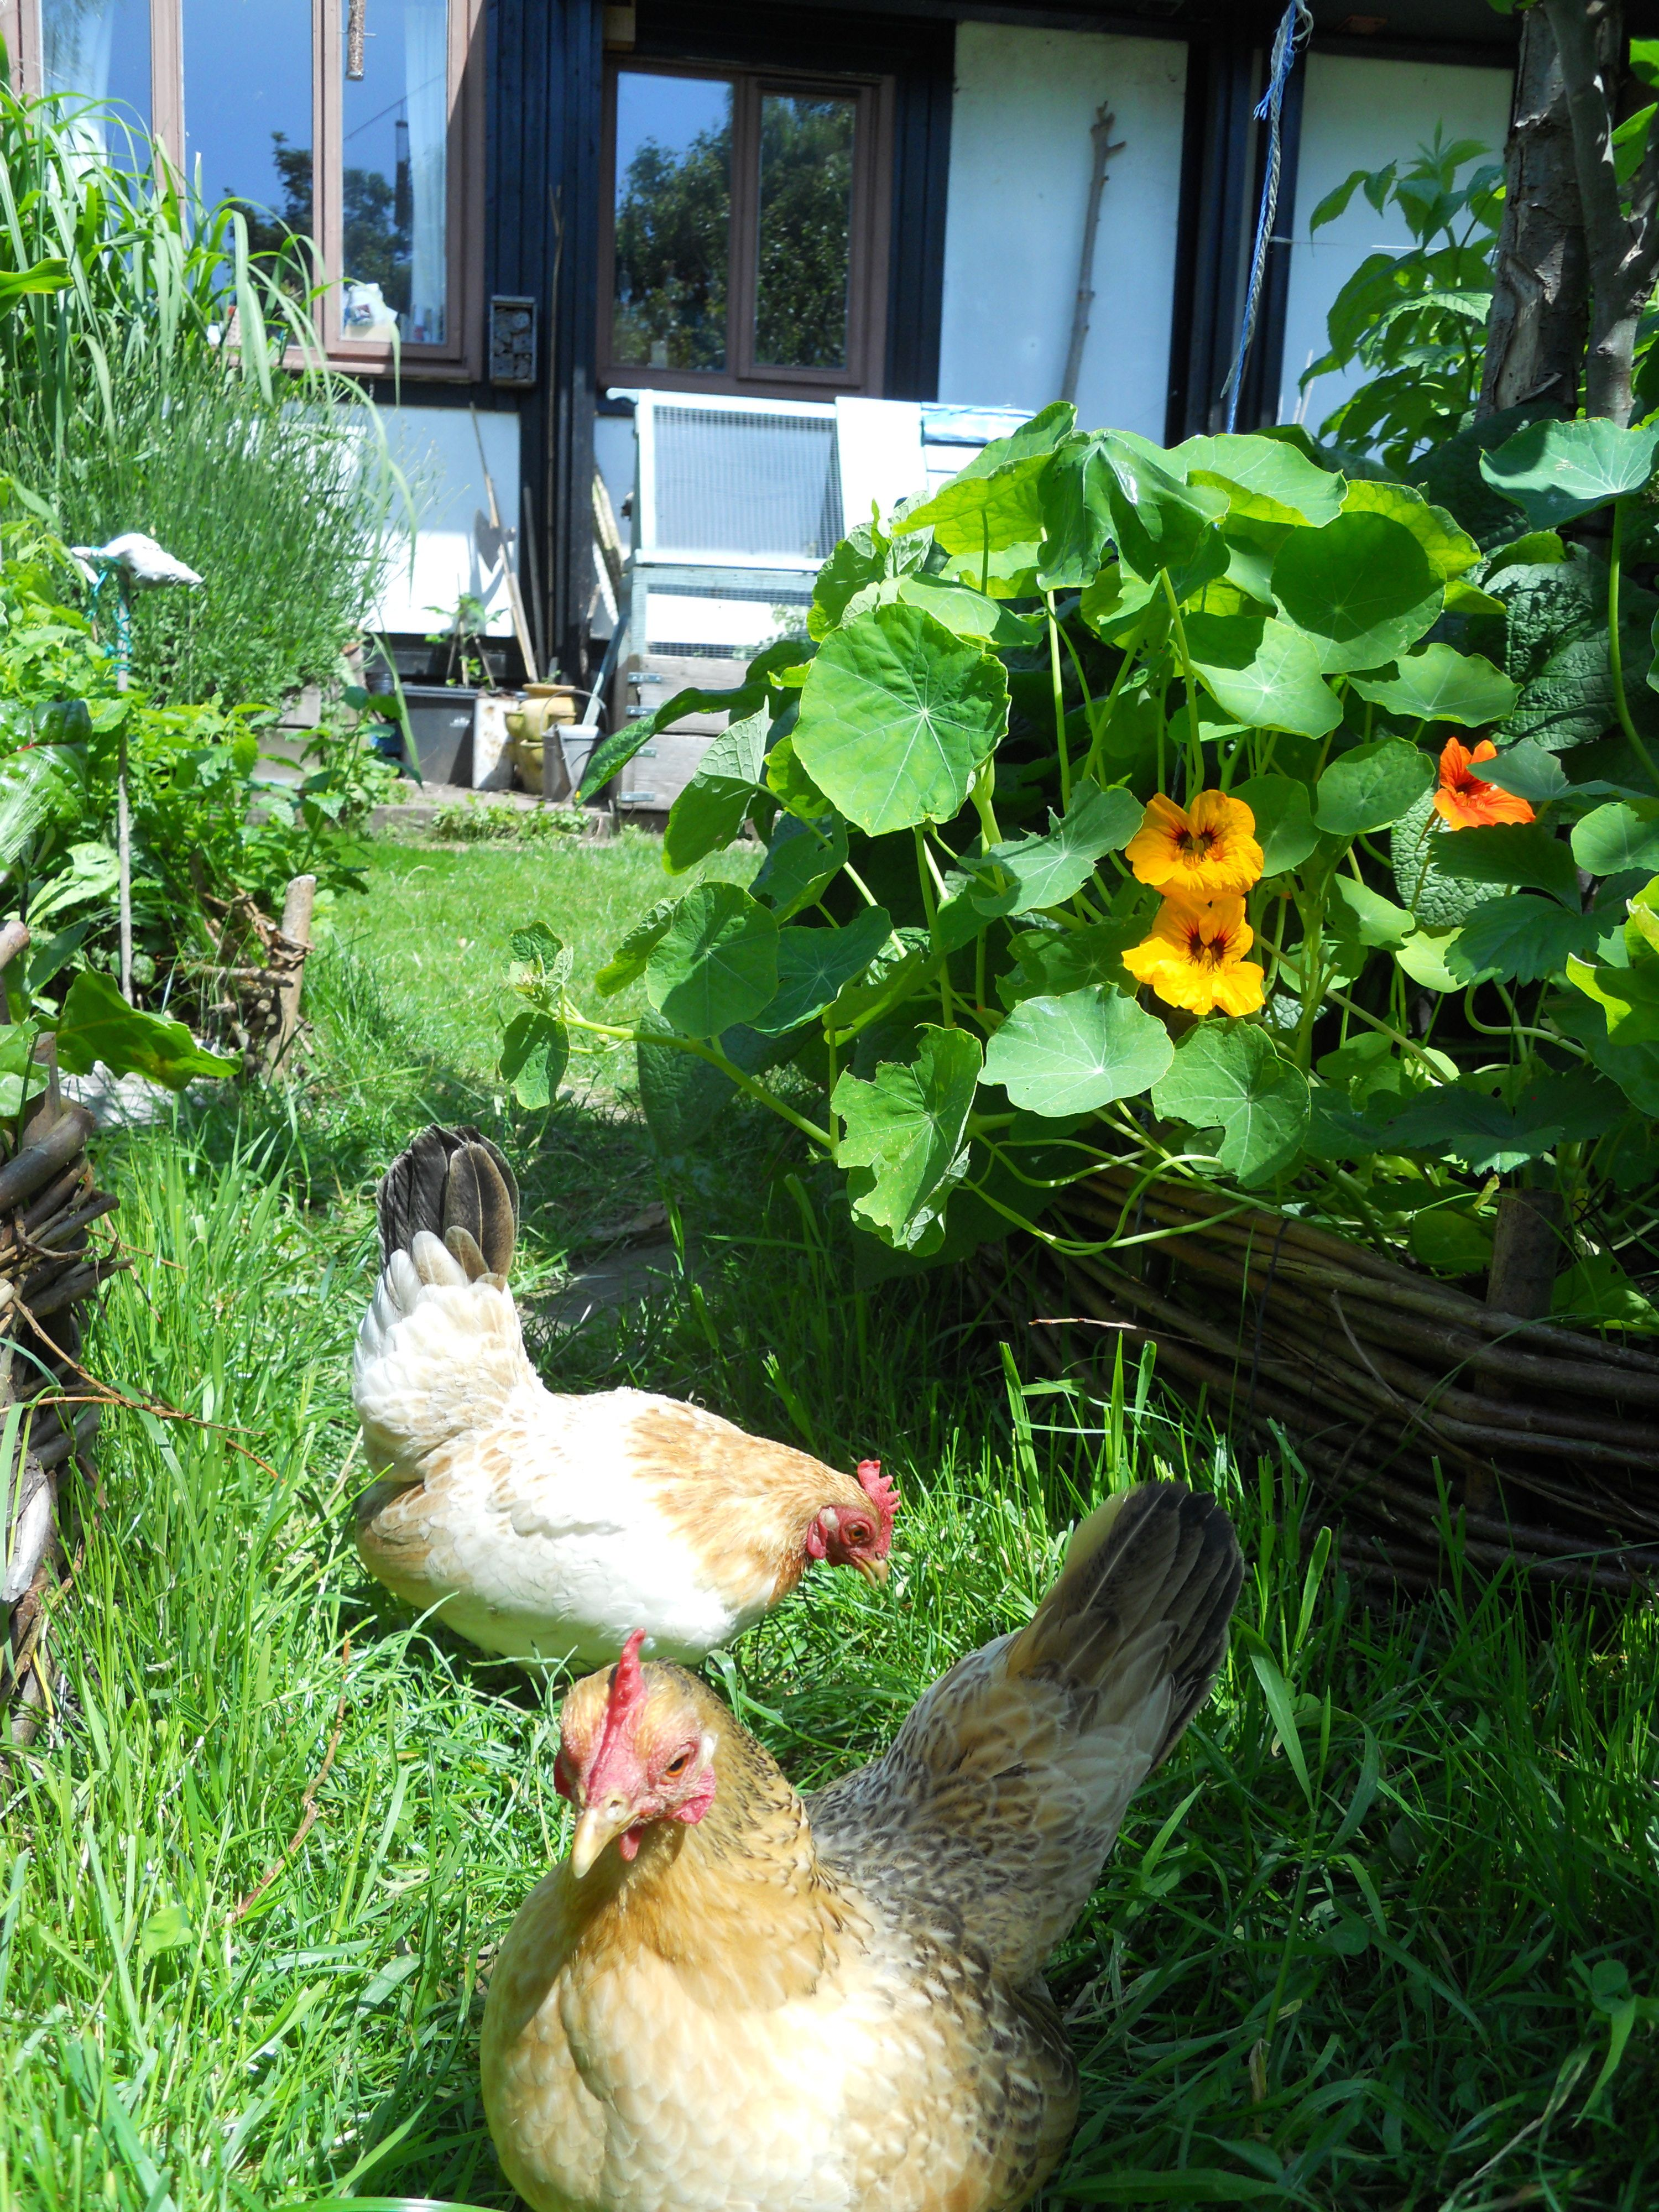 Our Bantam hens, Brenda and Daphne free-ranging in our